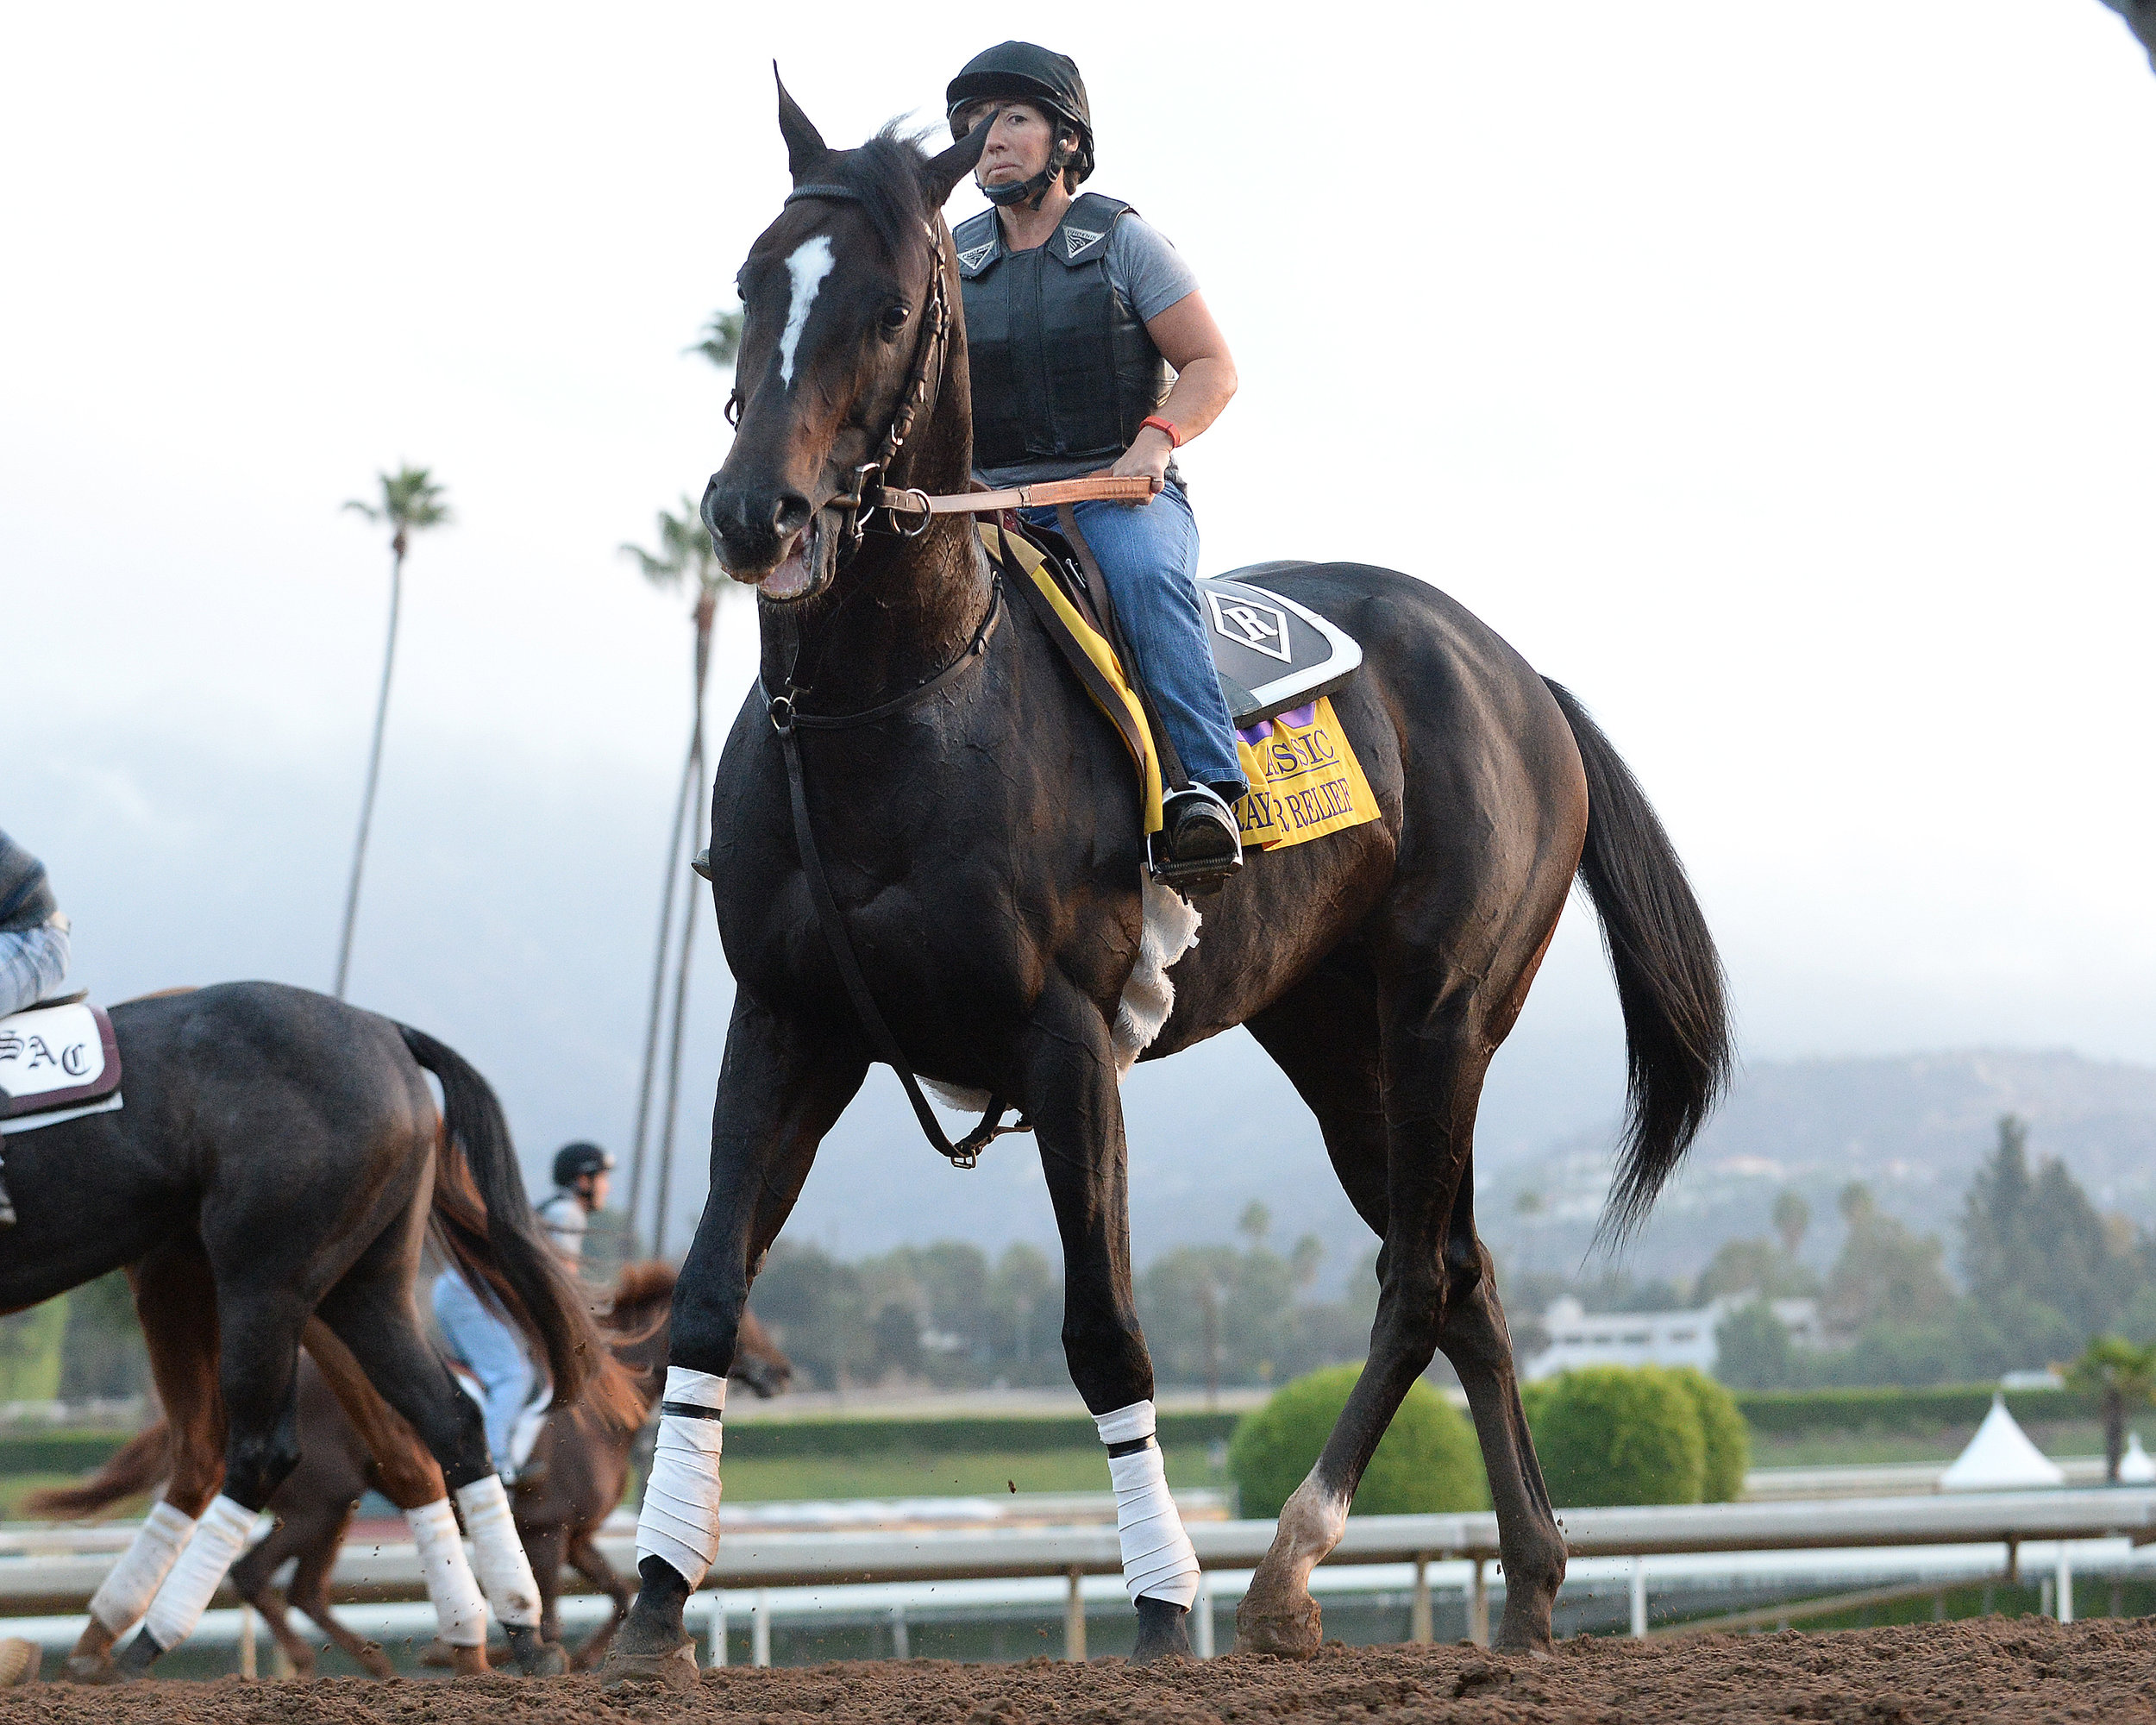 Prayer for Relief was foaled and raised at War Horse Place